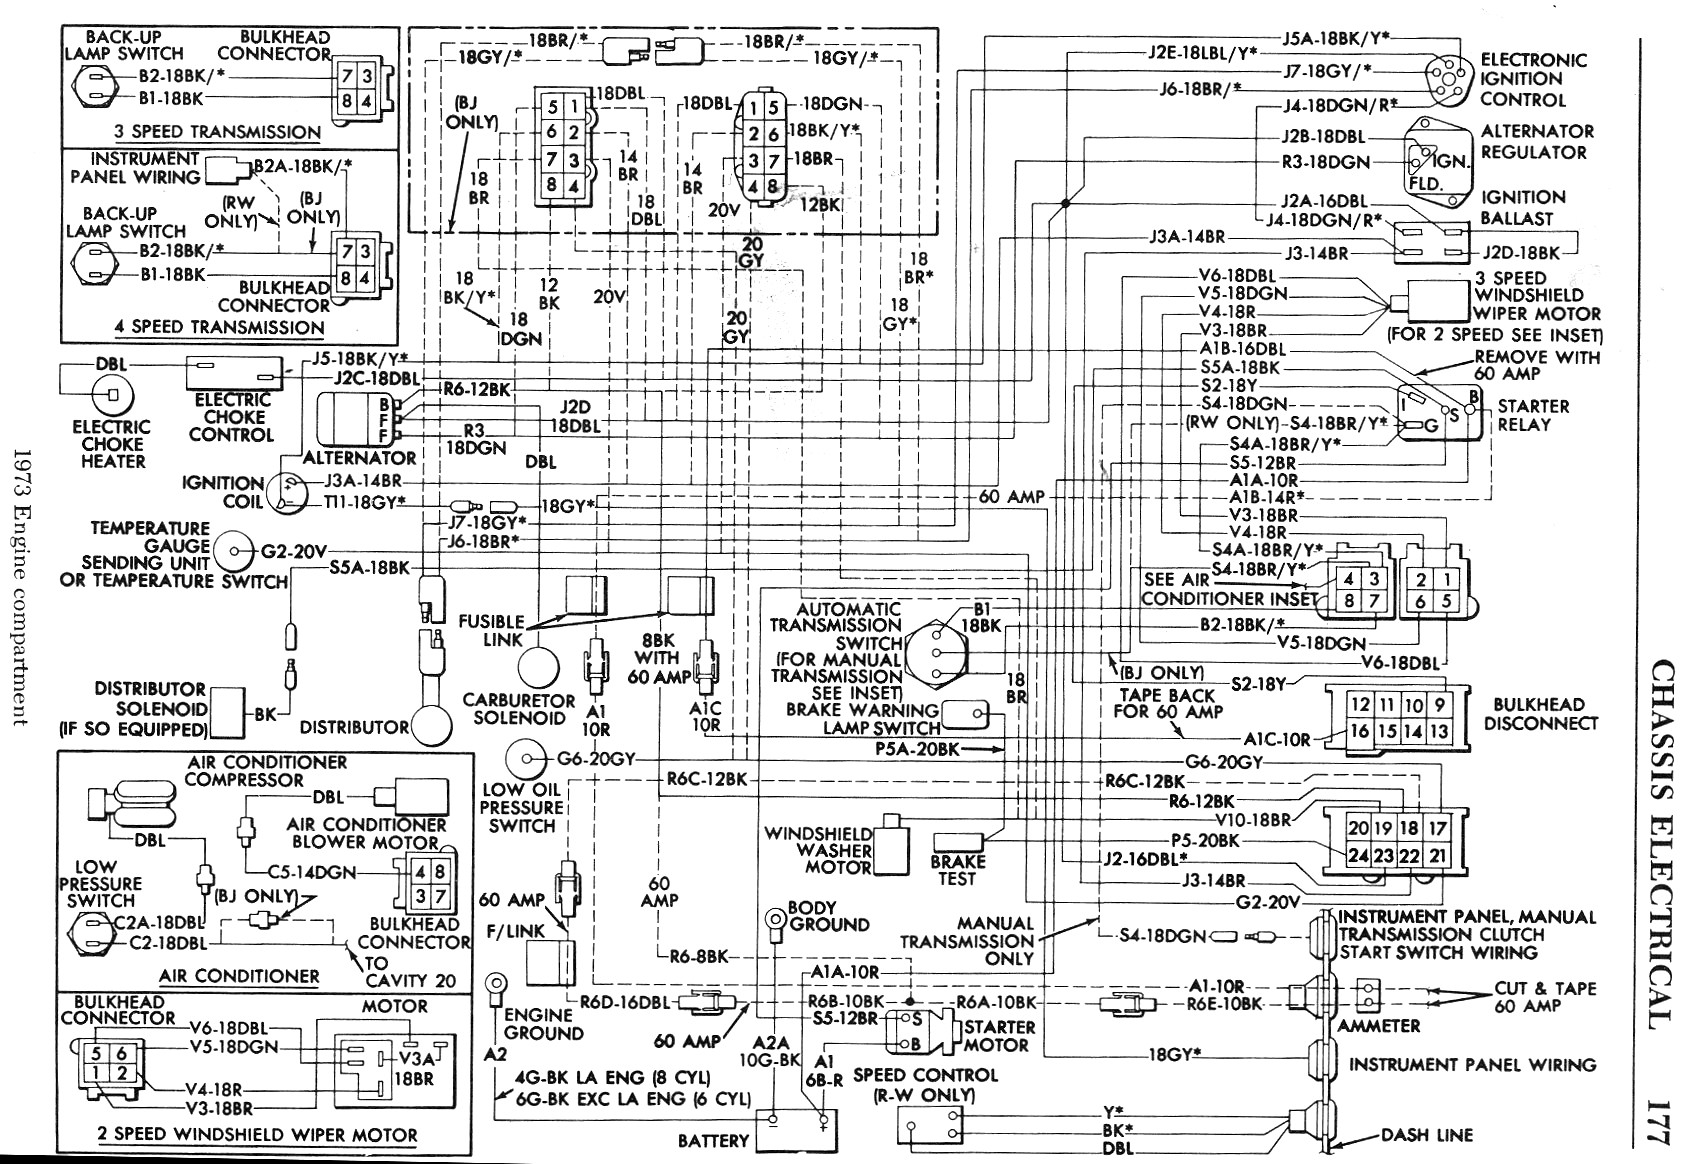 5098823 73B BodyEngineCompartmentWiringDiagram need 1973 duster wiring diagrams please! moparts question and plymouth duster wiring harness at edmiracle.co